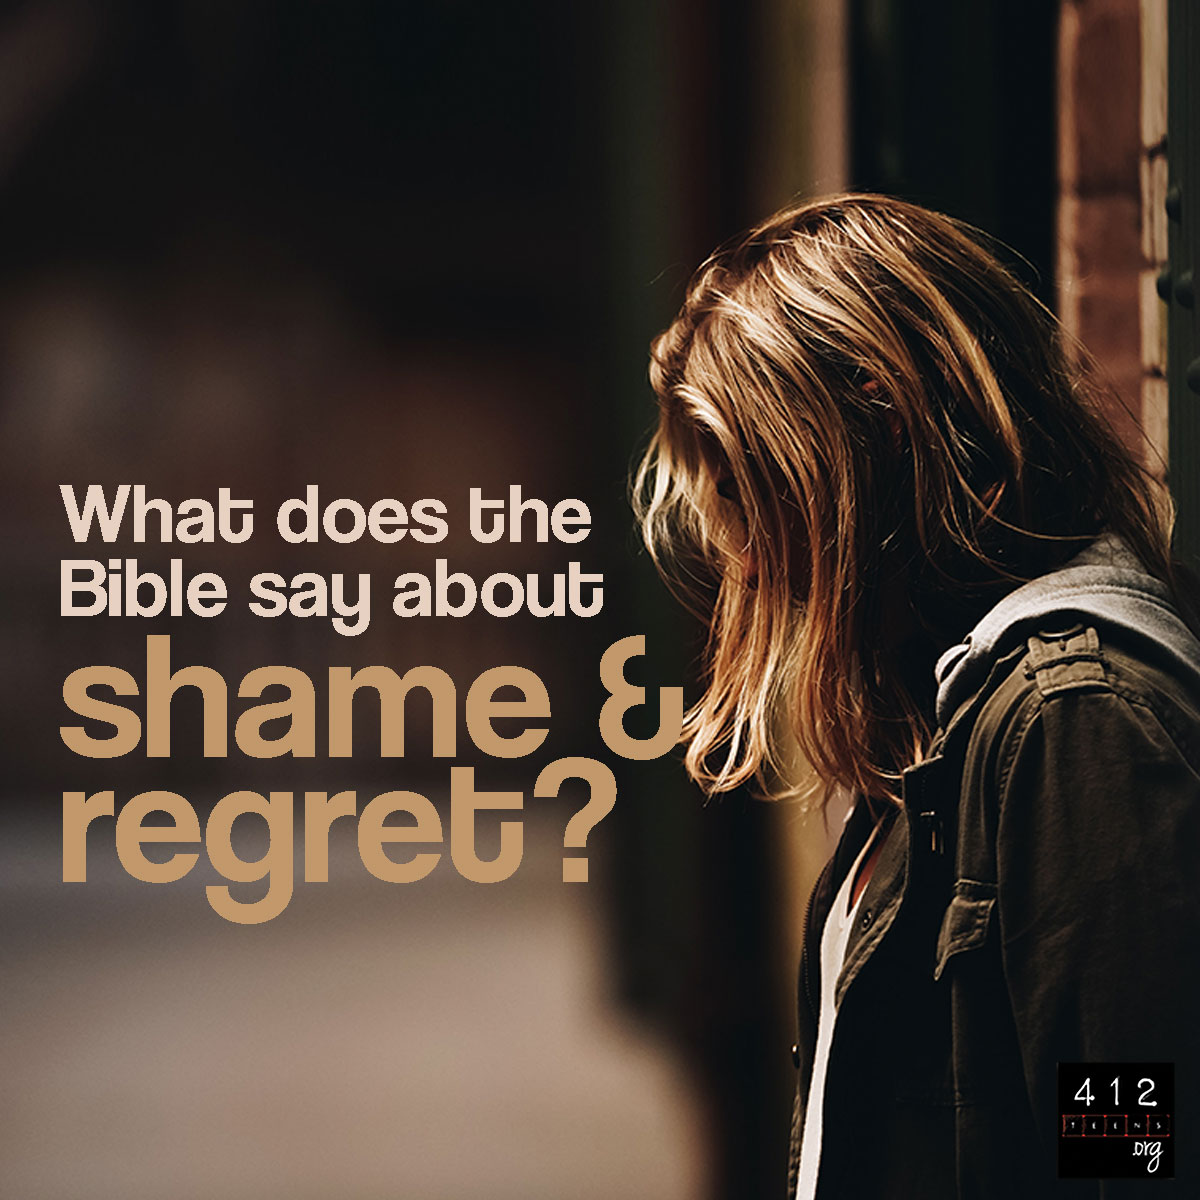 What Does The Bible Say About Shame And Regret?